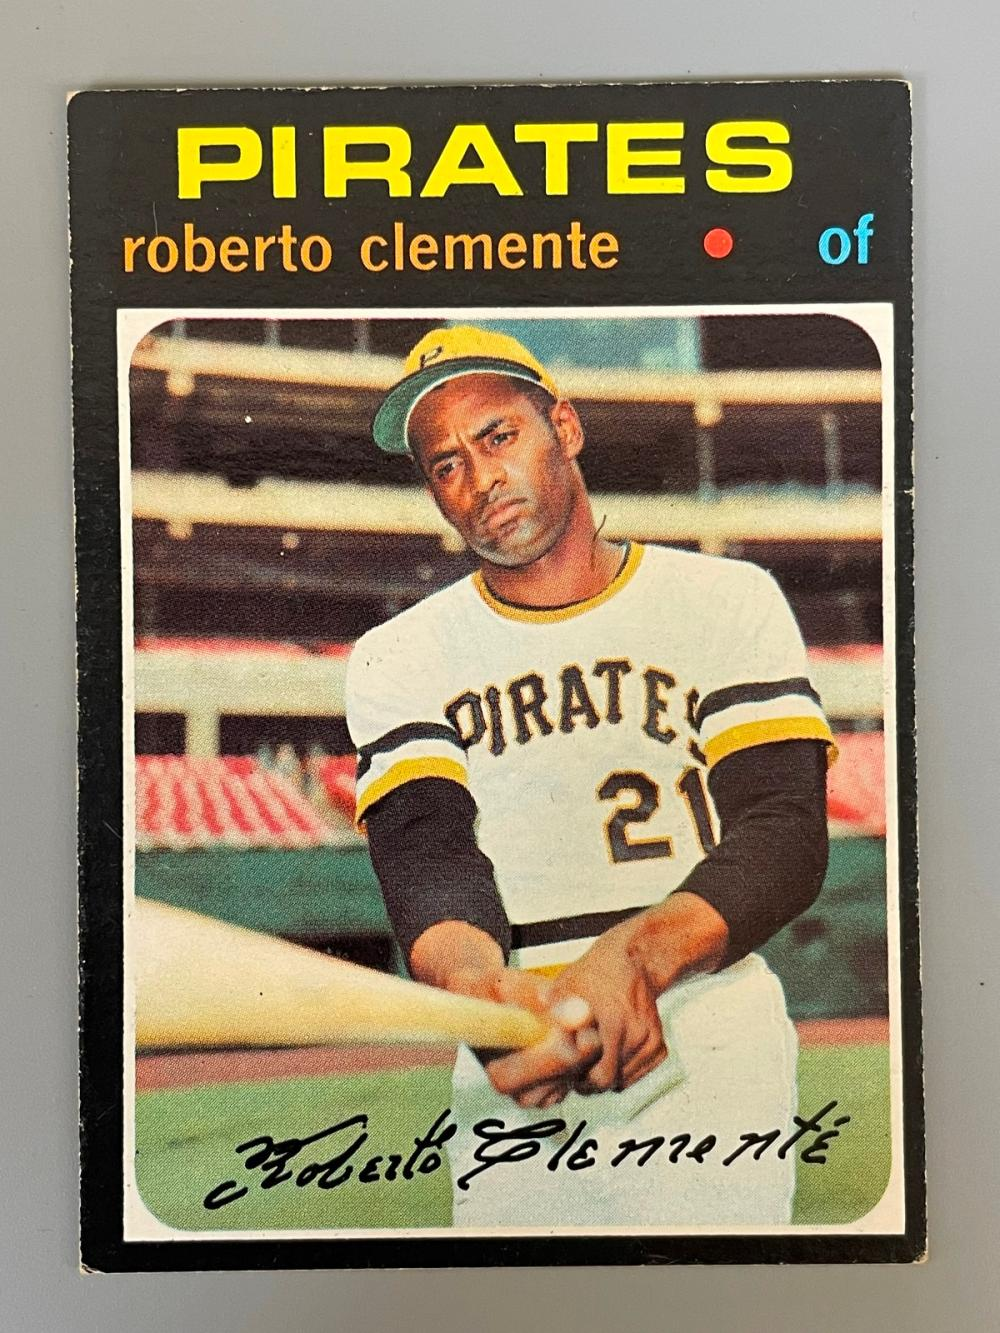 1971 Topps Baseball Cards: Roberto Clemente #630, Willie Mays #600